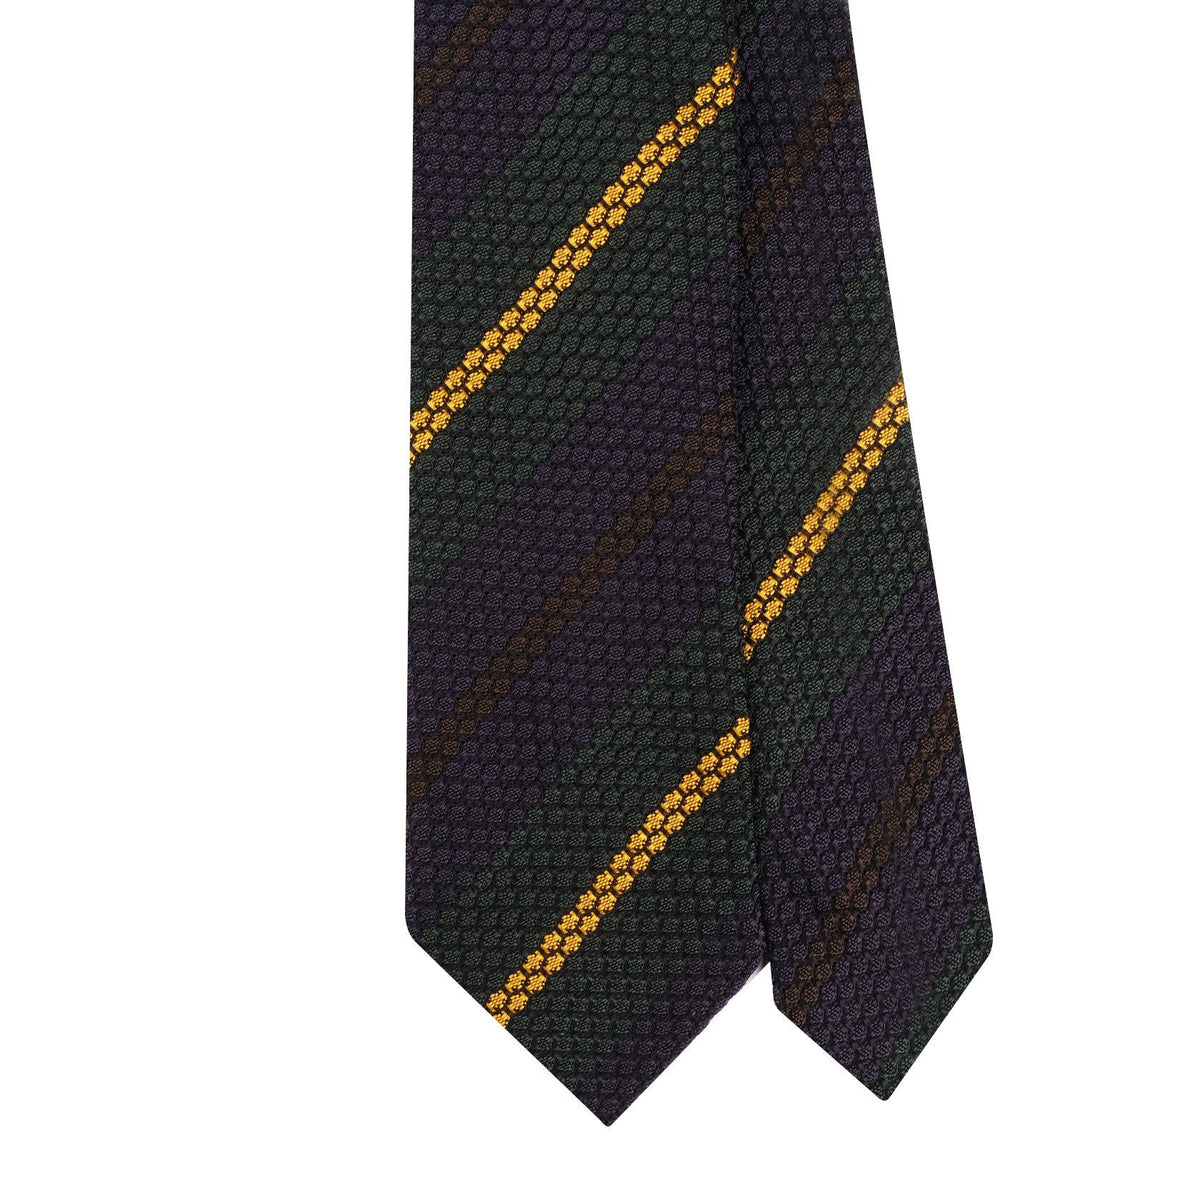 Mix Stripe 3-Fold Grenadine Tie - Verde Mix